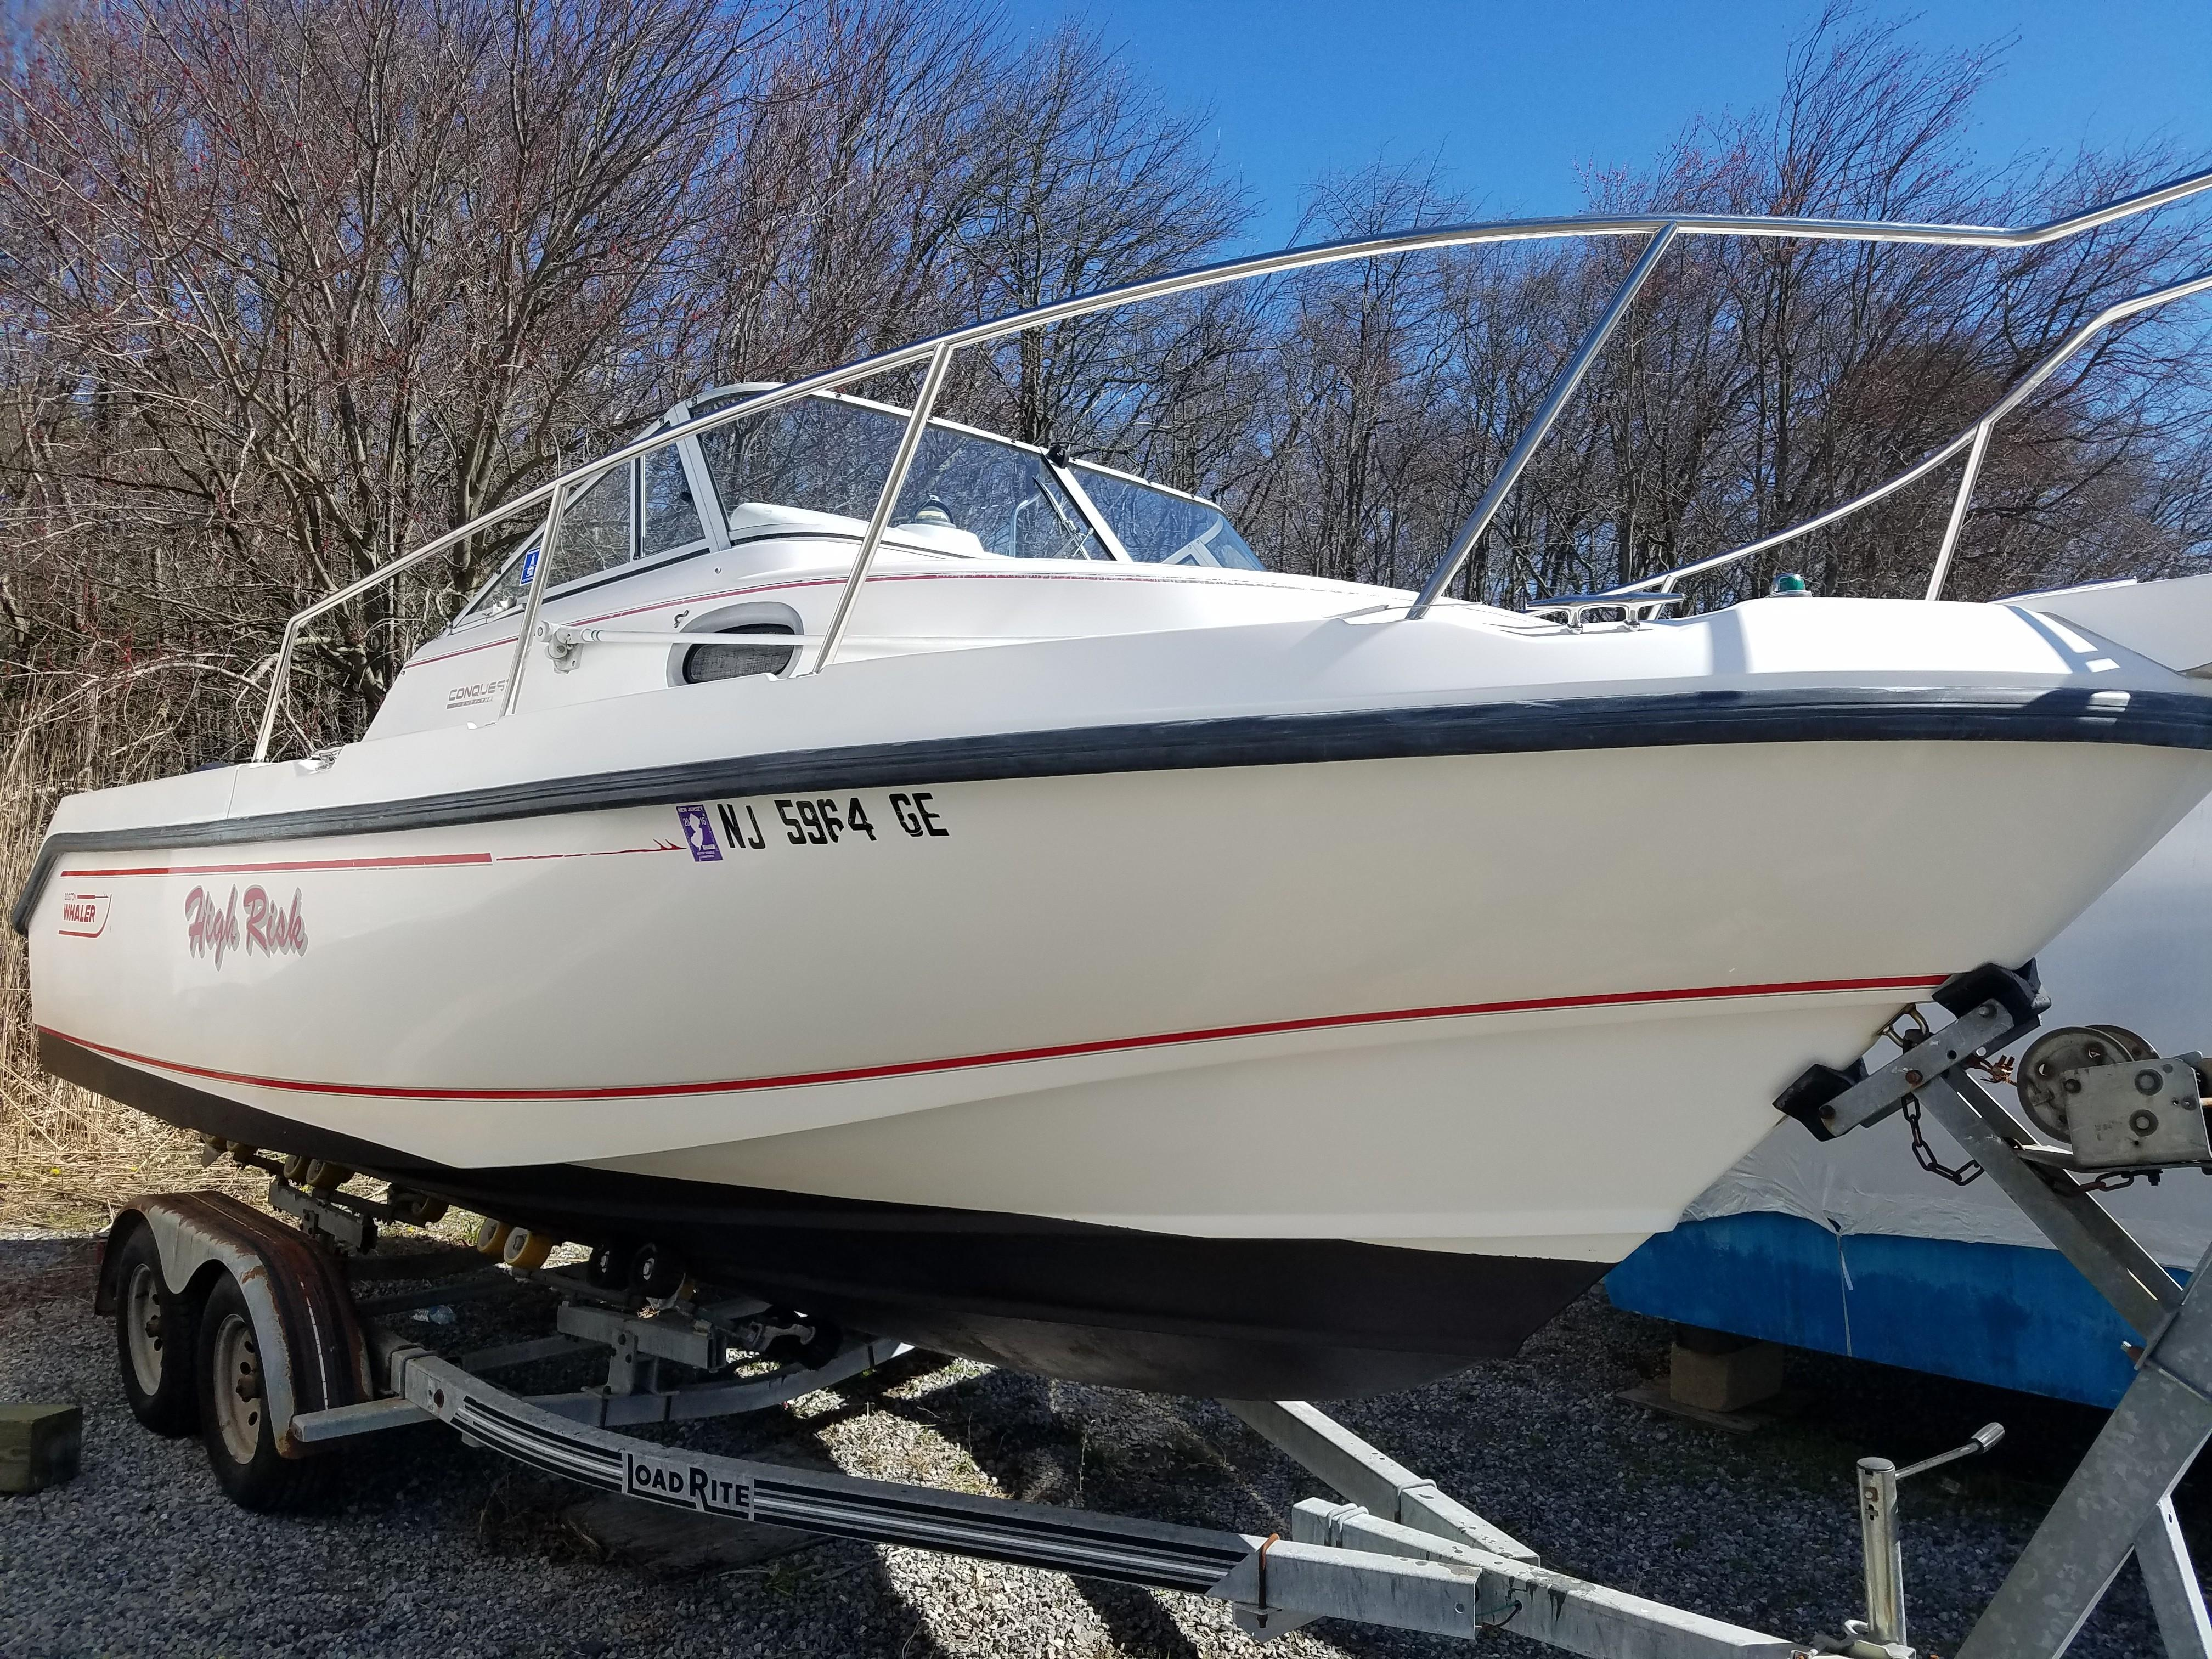 6172555_20170408100555525_1_XLARGE&w=4032&h=3024&t=1491675085000 1997 boston whaler 23 conquest power boat for sale www boston whaler wiring harness at alyssarenee.co